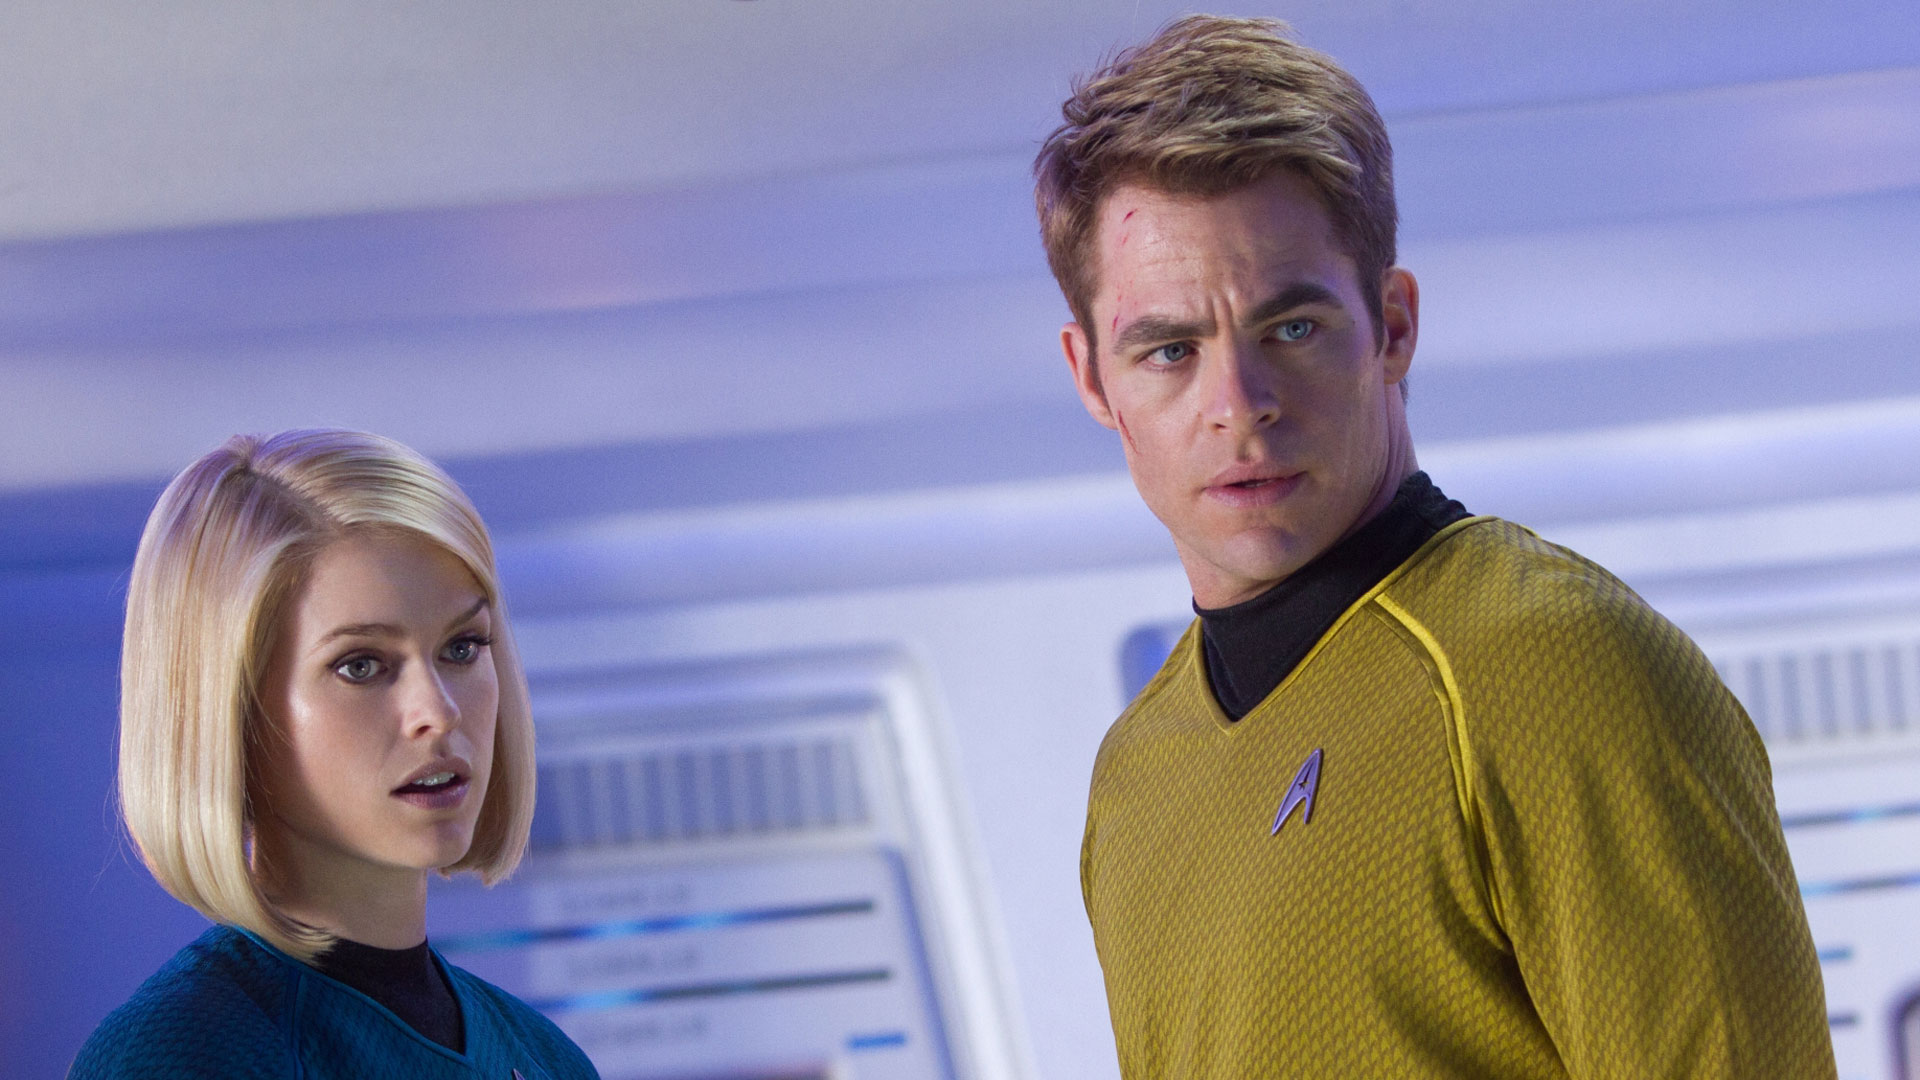 Captain Kirk (Chris Pine) and Carol Marcus (Alice Eve) in Star Trek Into Darkness (2013)